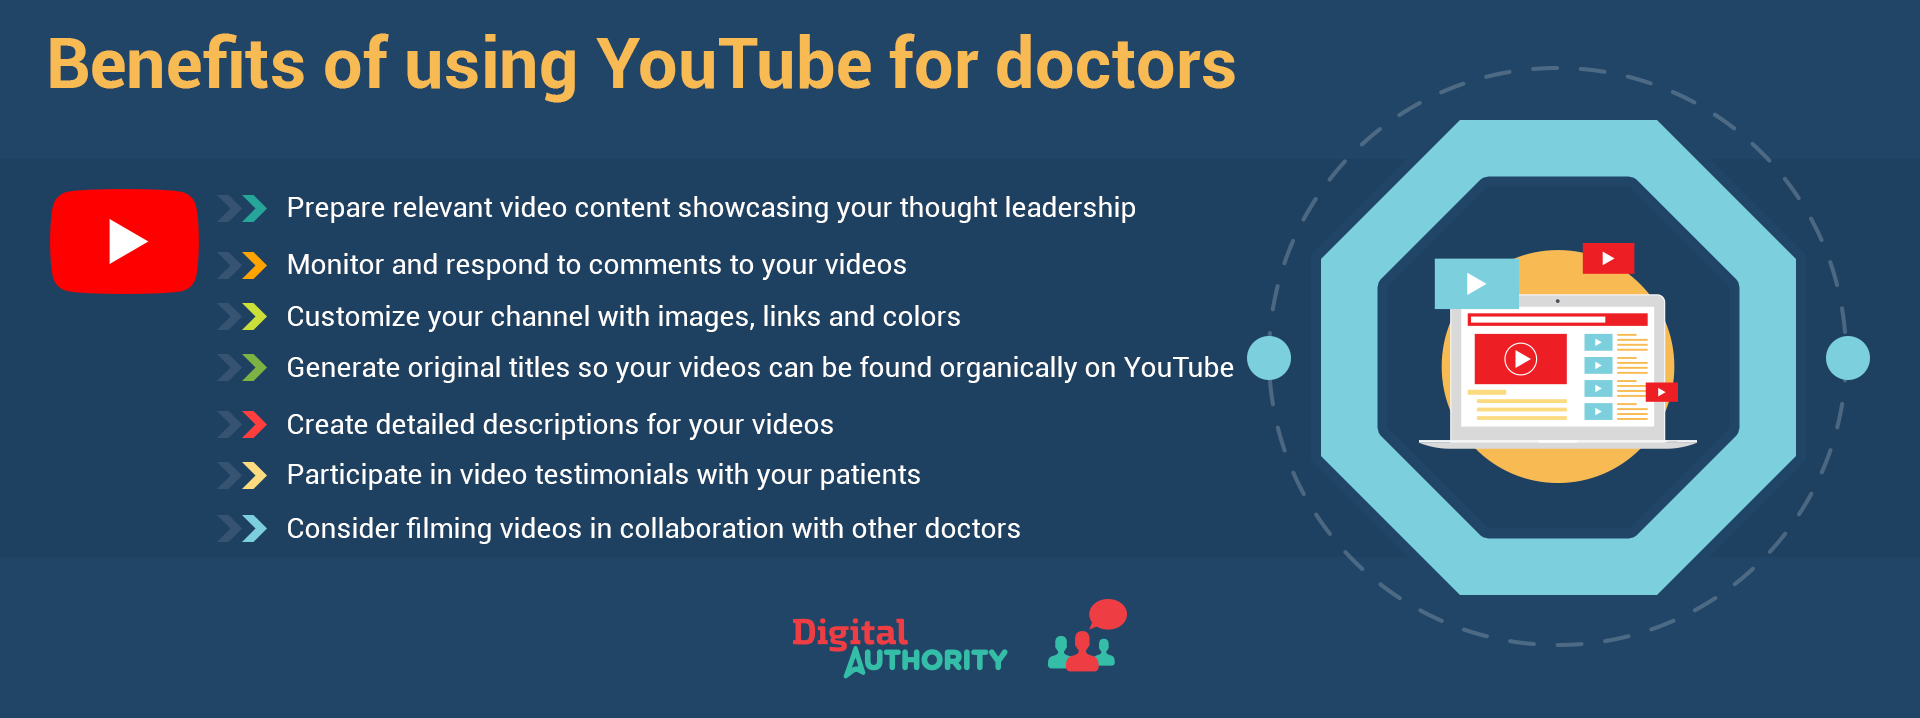 Infographic explaining the benefits of using YouTube for doctors